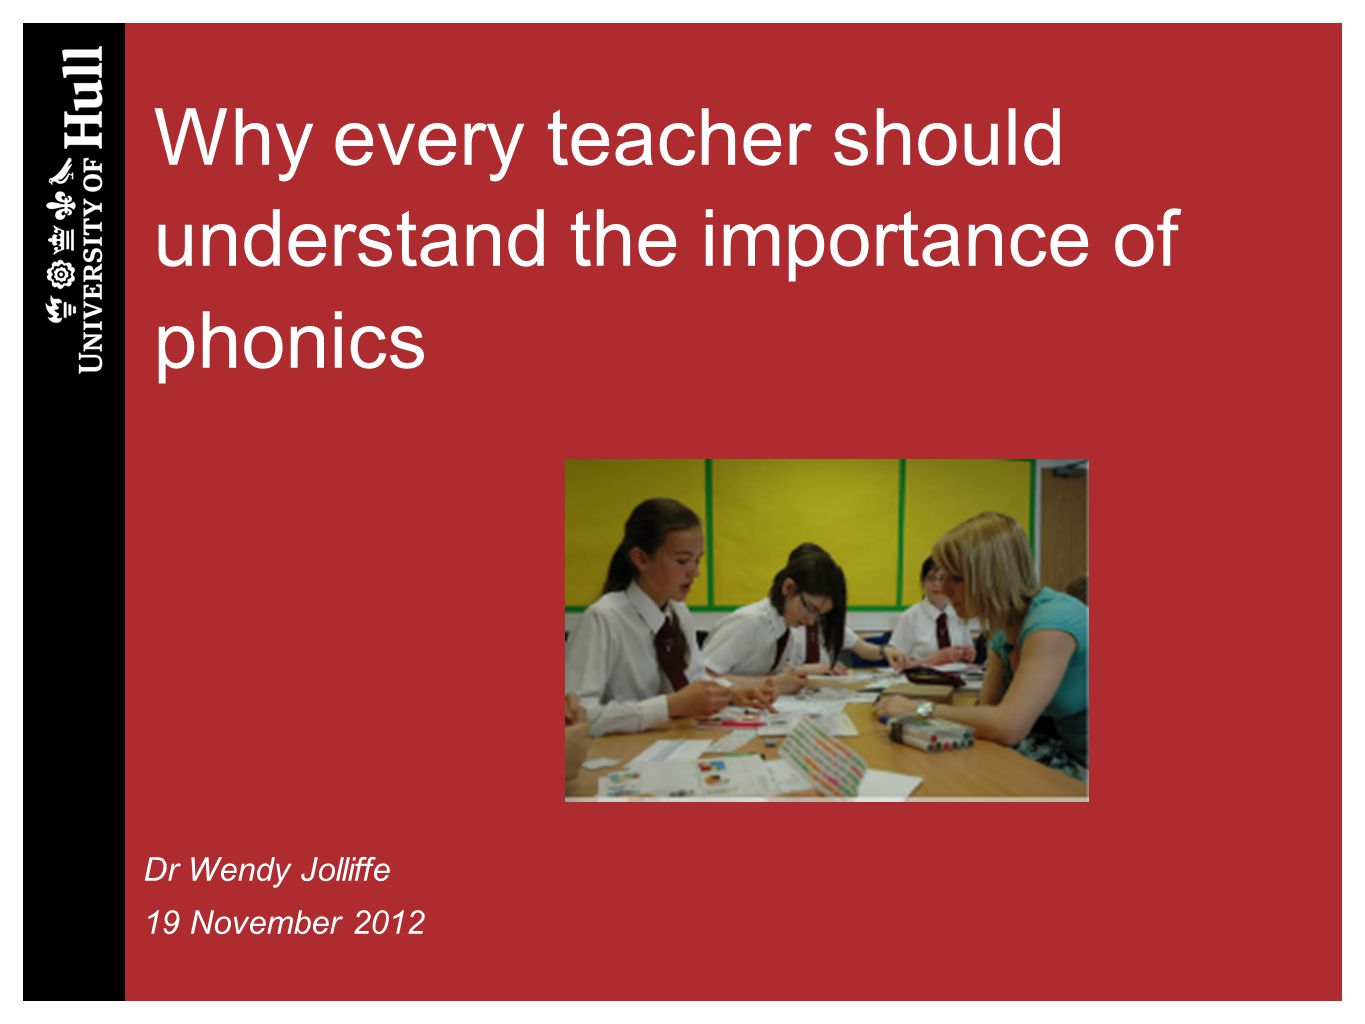 Why every teacher should understand the importance of phonics